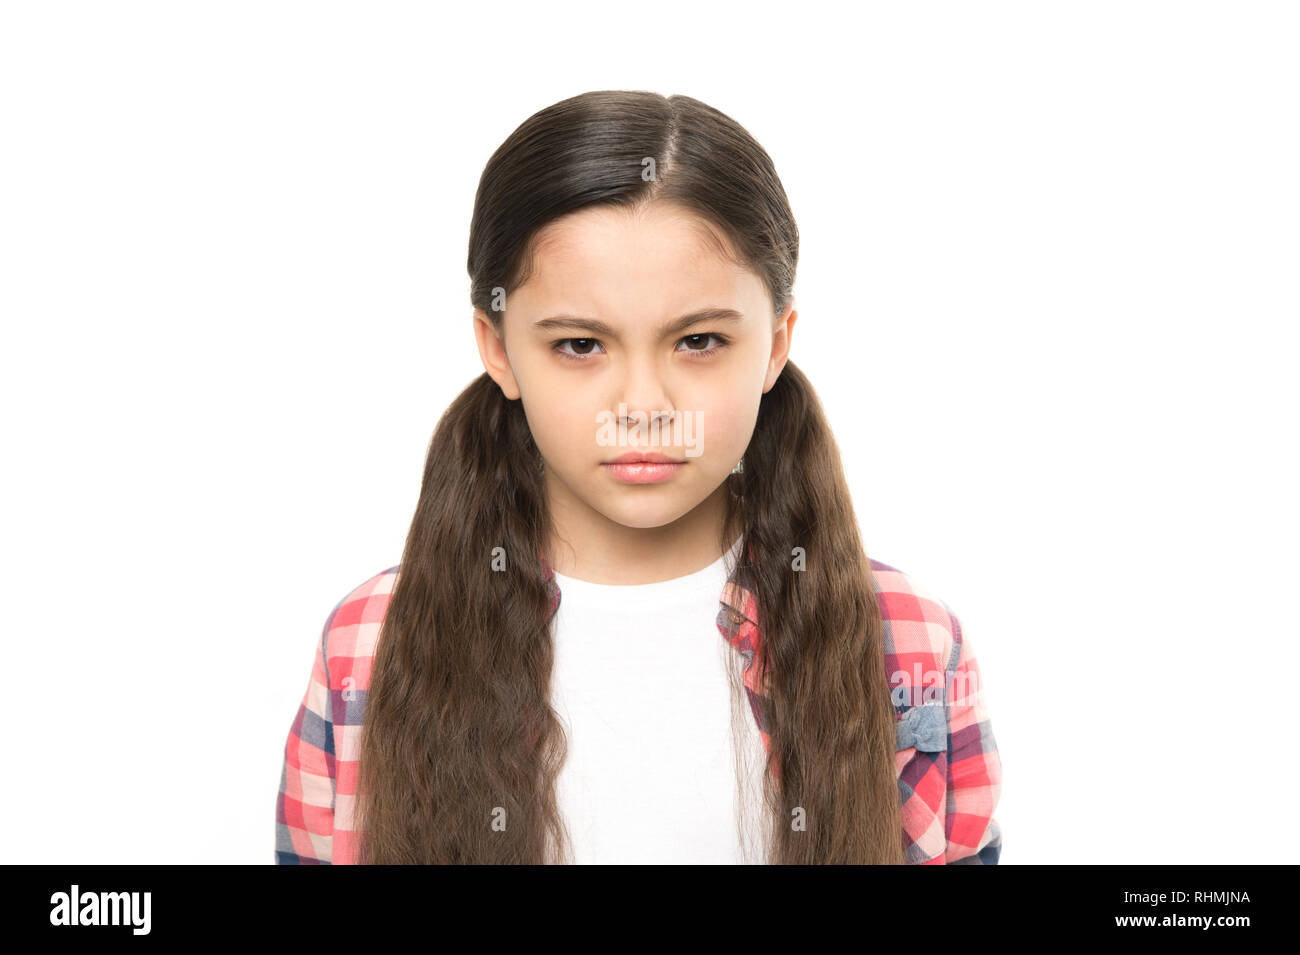 Kid girl suspect you. Brutal revenge. Unhappy child hateful glance. Someone deserve punishment revenge. Latent aggression concept. Aggression and harmful feelings. Offended kid dream about revenge. - Stock Image